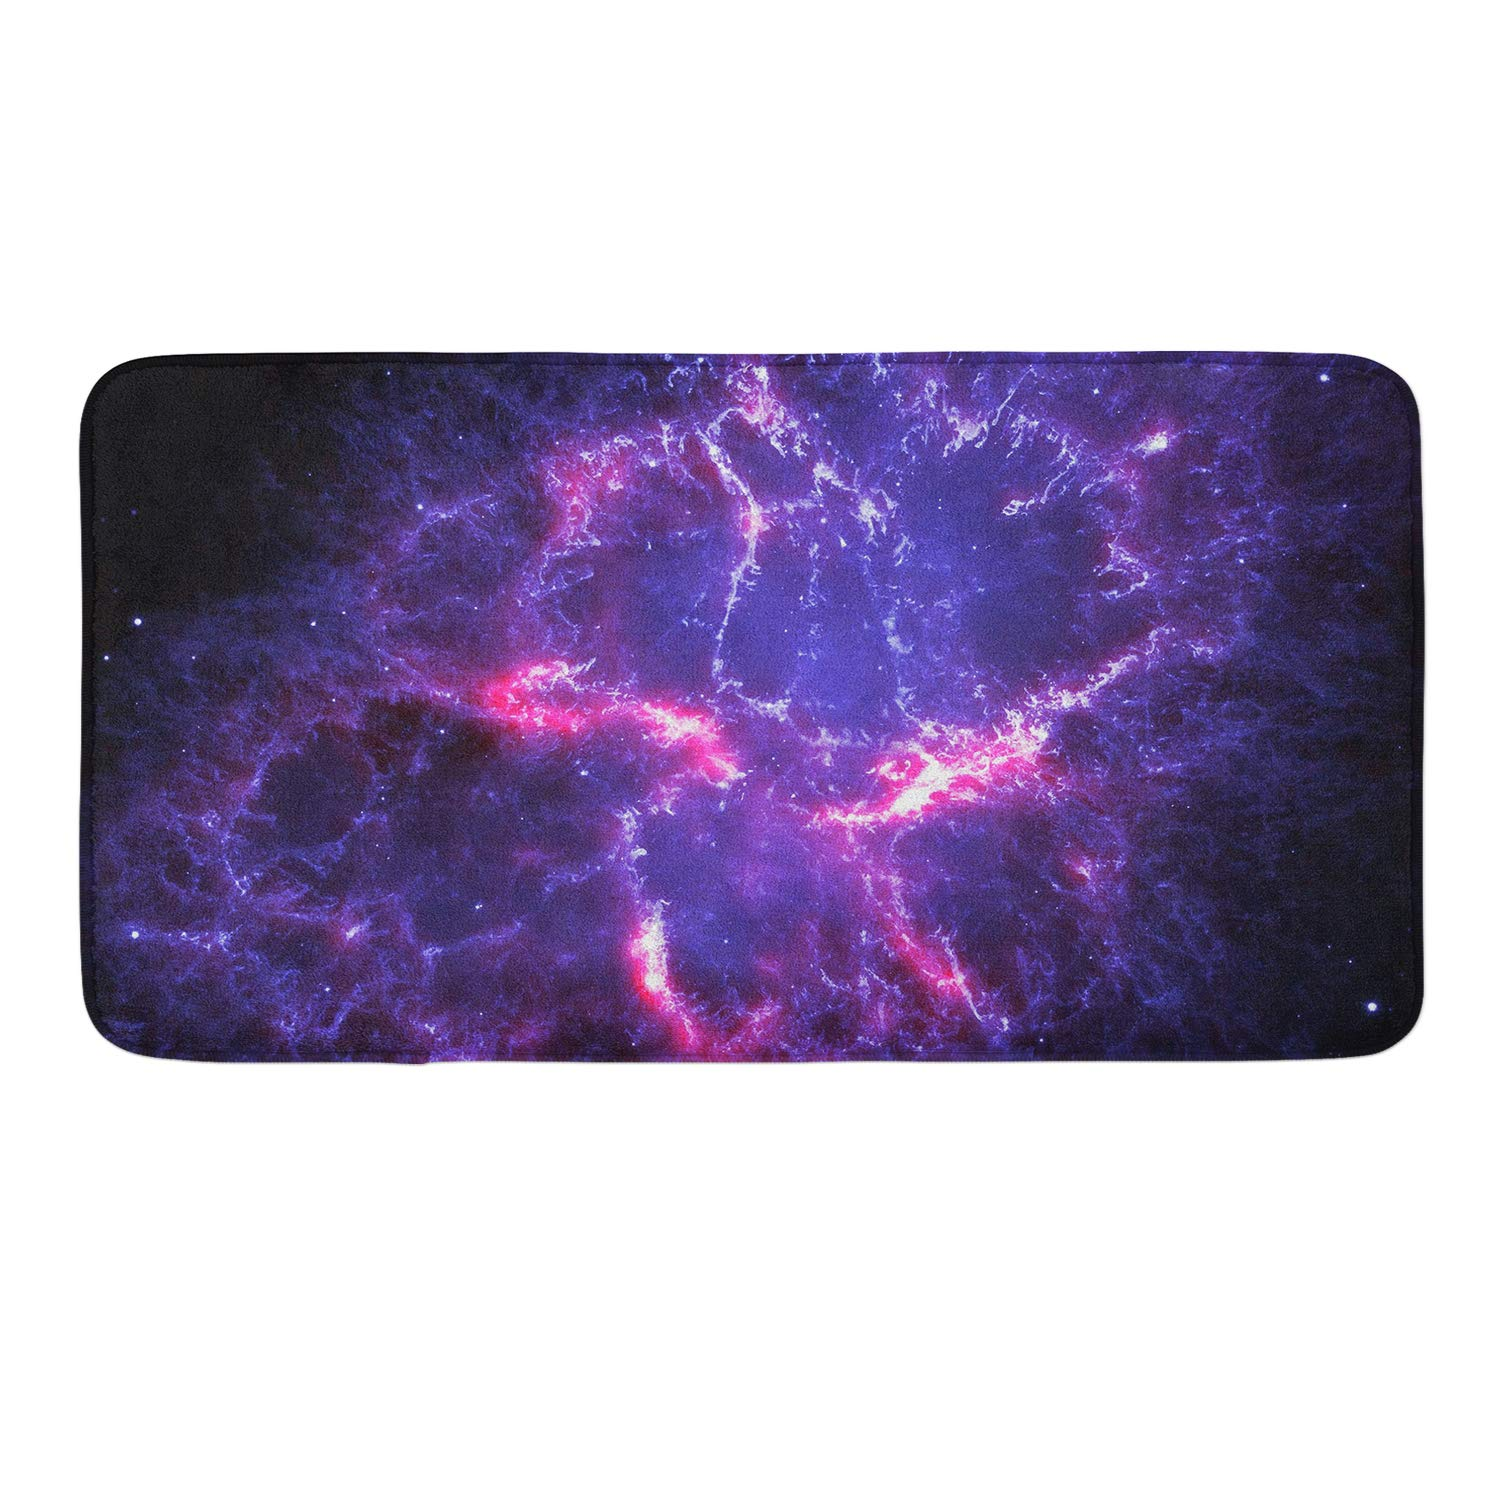 CIGOCI Non-Slip Memory Foam Bath Rugs - 18x36 Inch, Extra Absorbent,Soft,Duarable and Quick-Dry Shaggy Rugs, 3D PrintBrilliant Galaxy